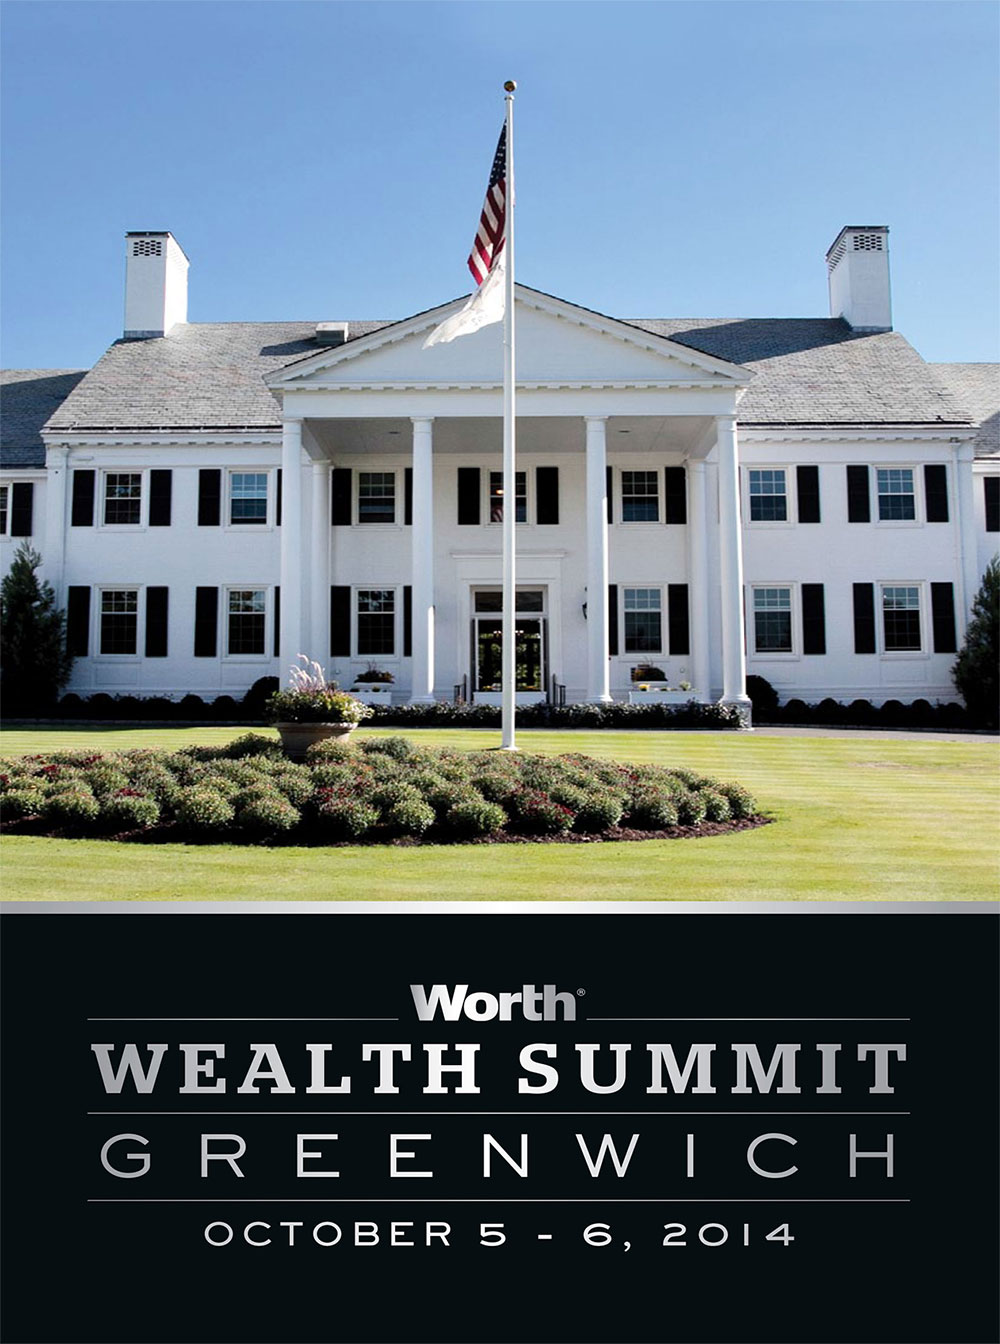 Worth Wealth Summit Greenwich 2014